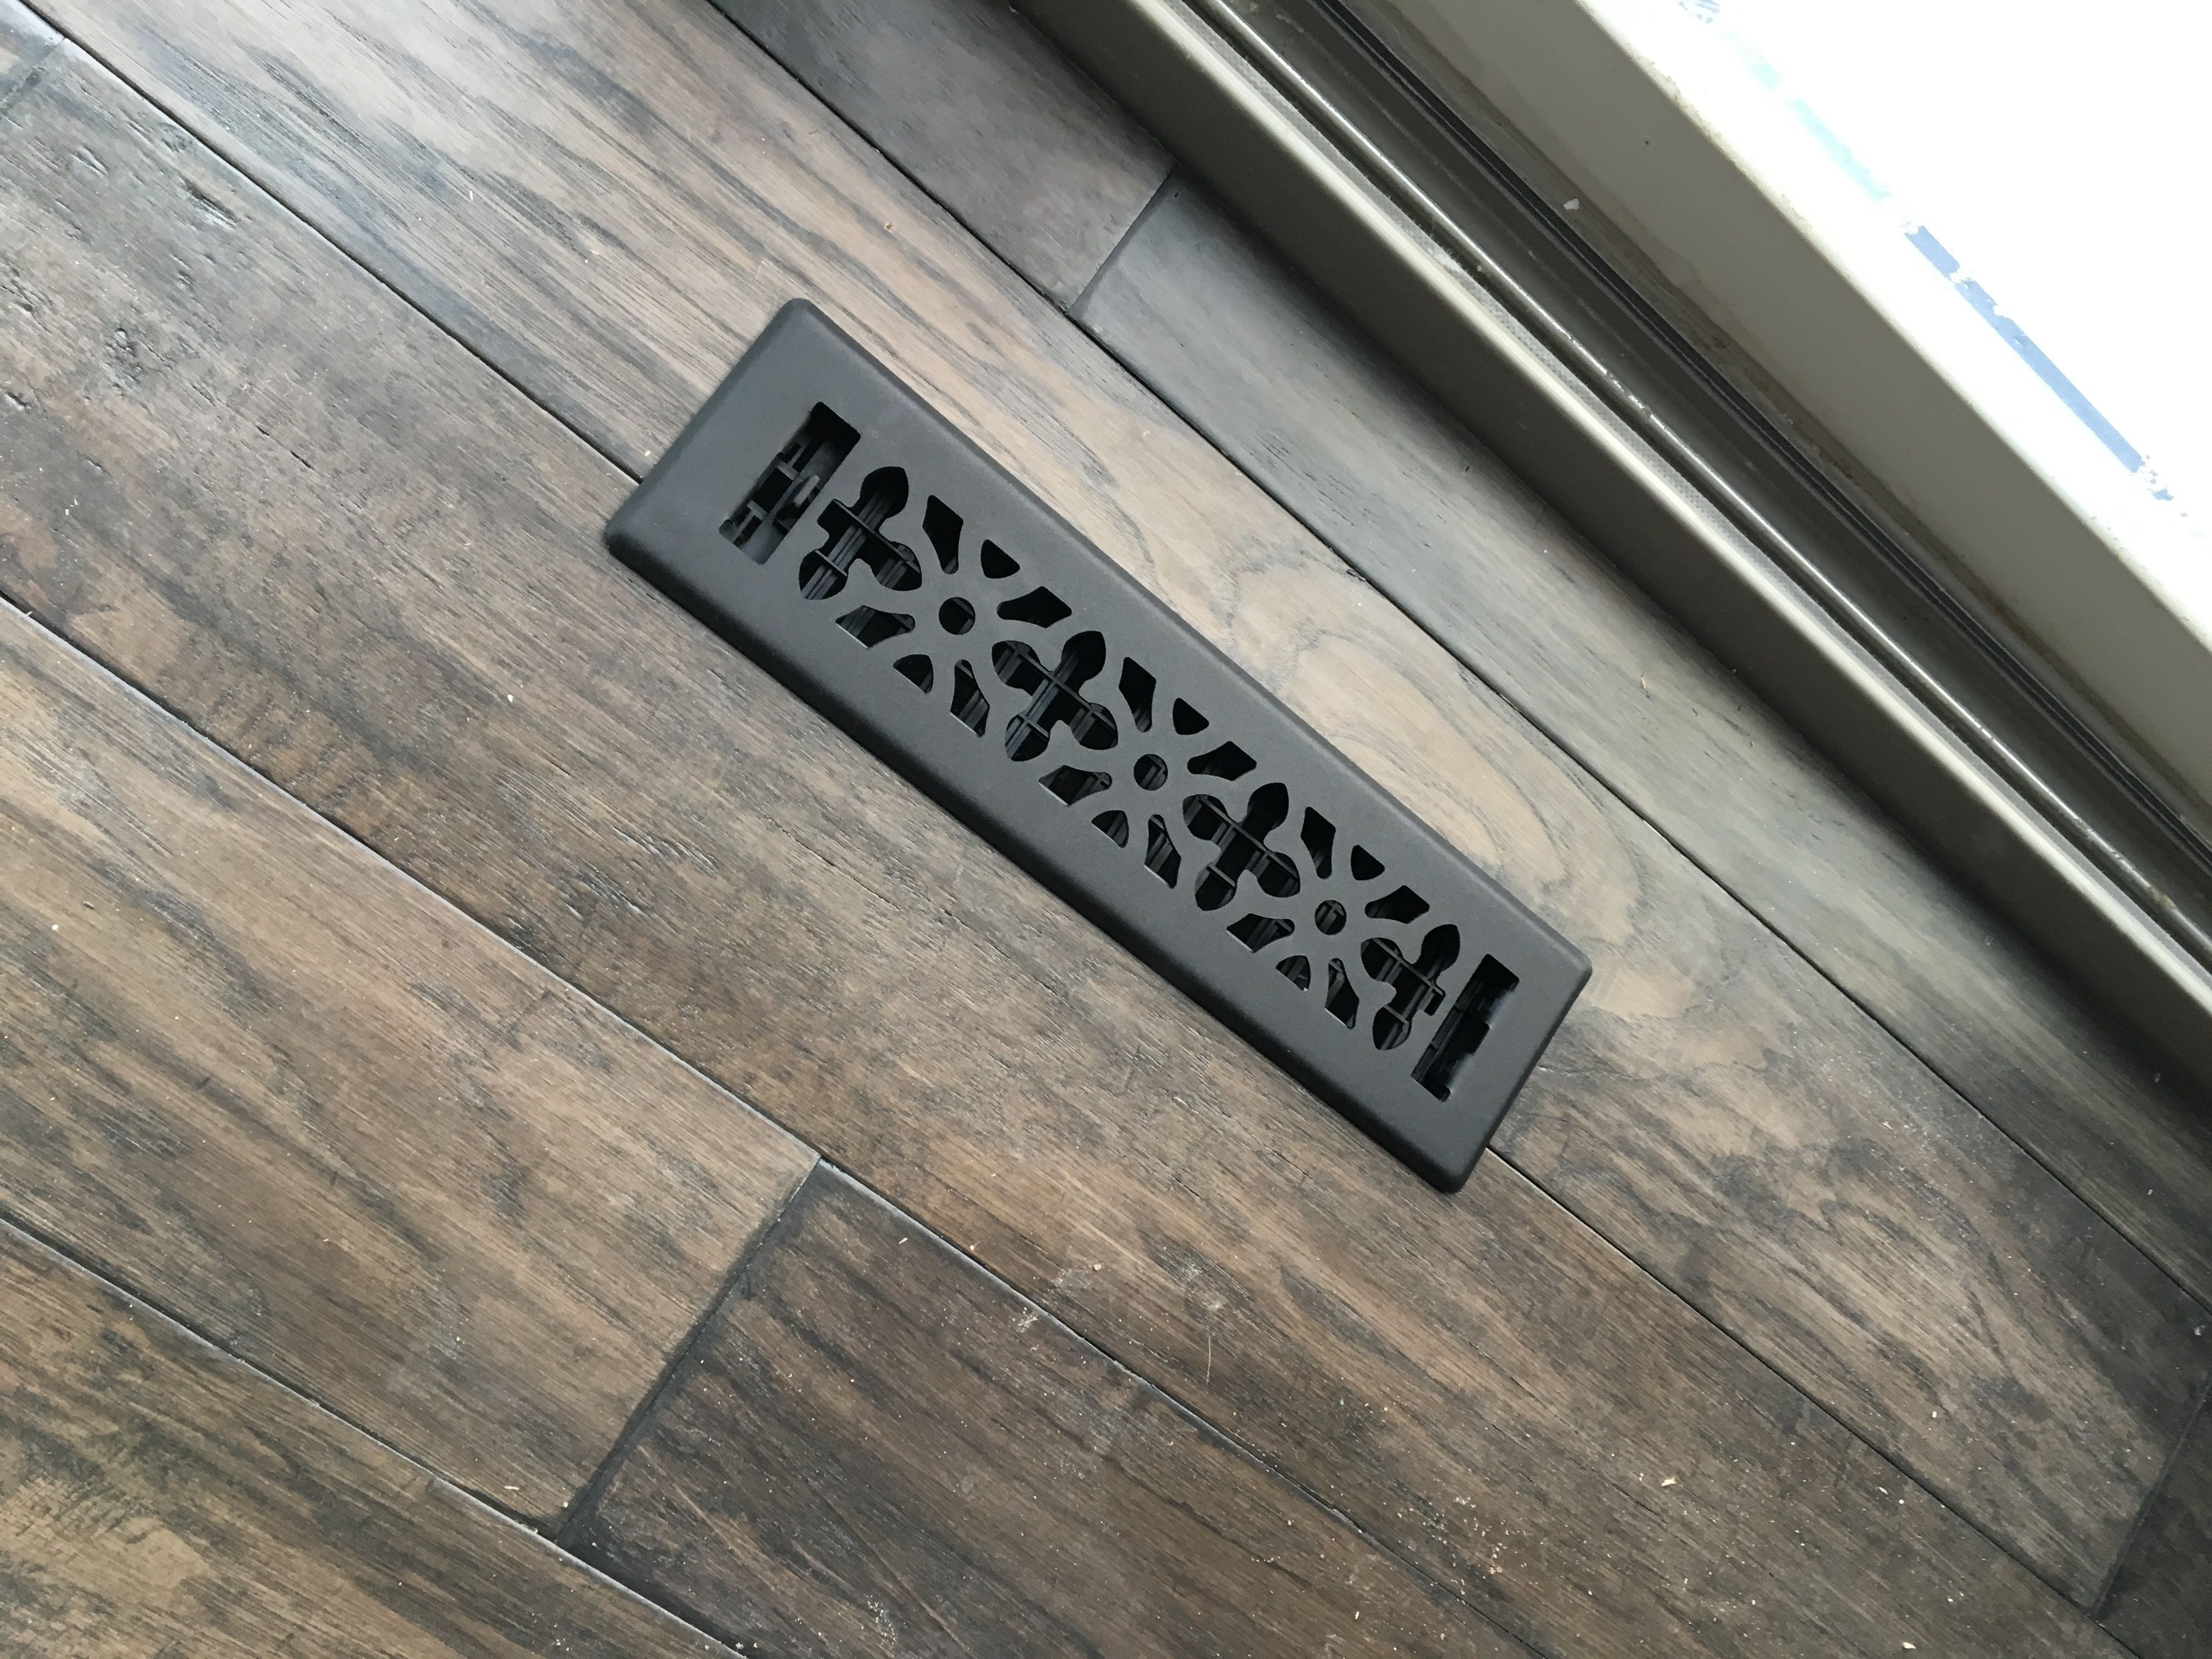 Gothic Register From Menards And Mannington Engineered Wood Floor In Hickory Smoke Wood Floor Colors Engineered Wood Floors Riverside House